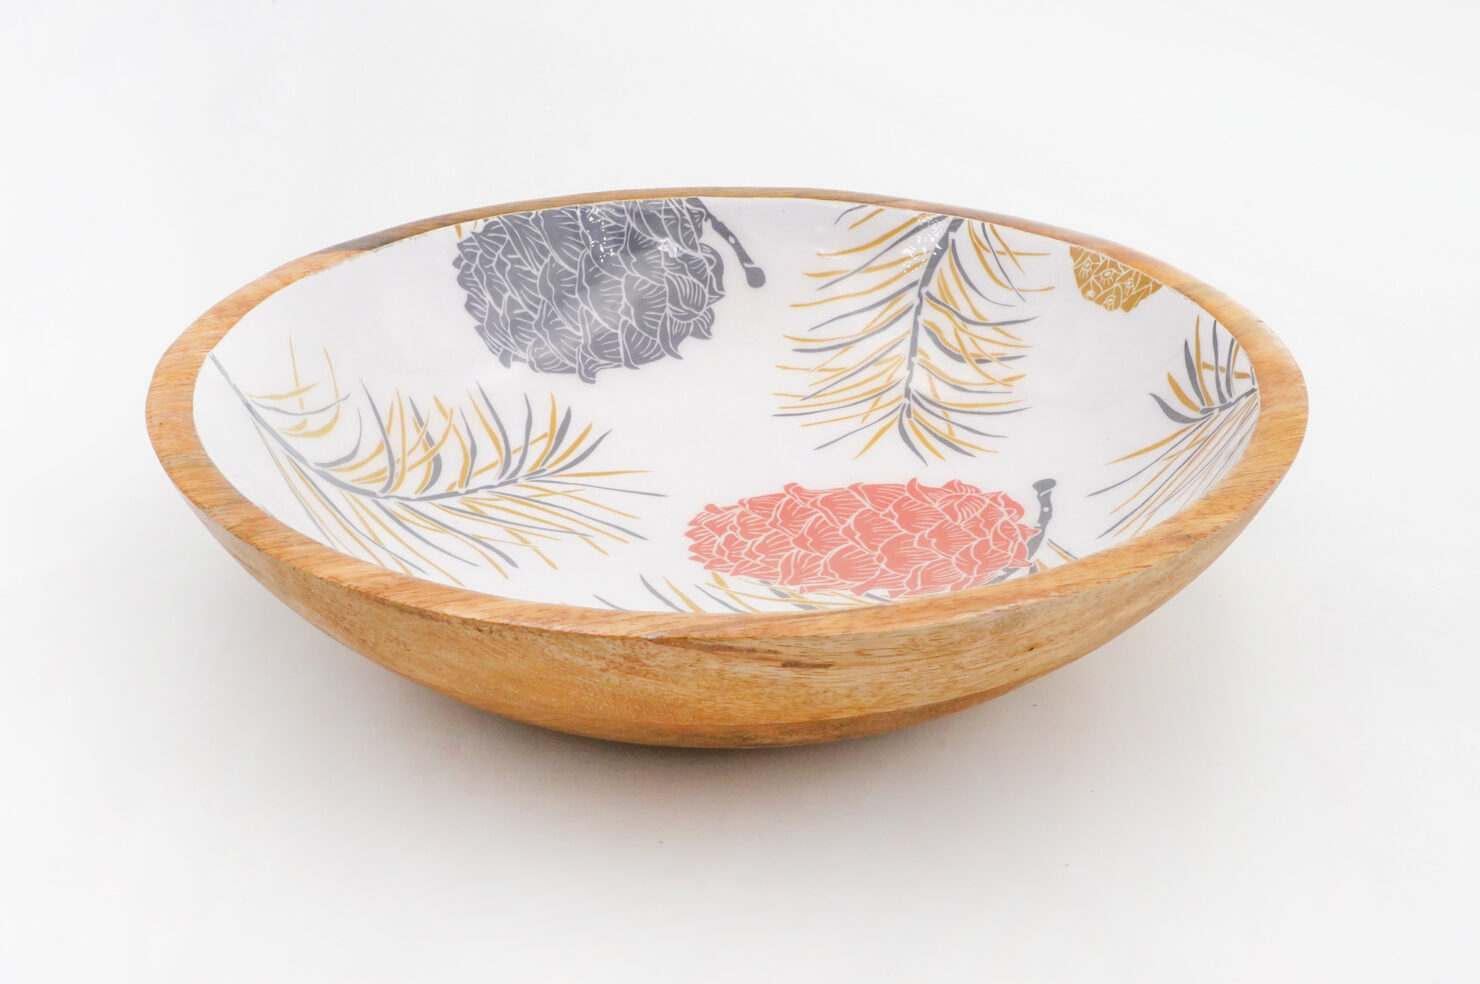 BOWL PINE CORNES MANGO WOOD 30 CM - BY ROOM